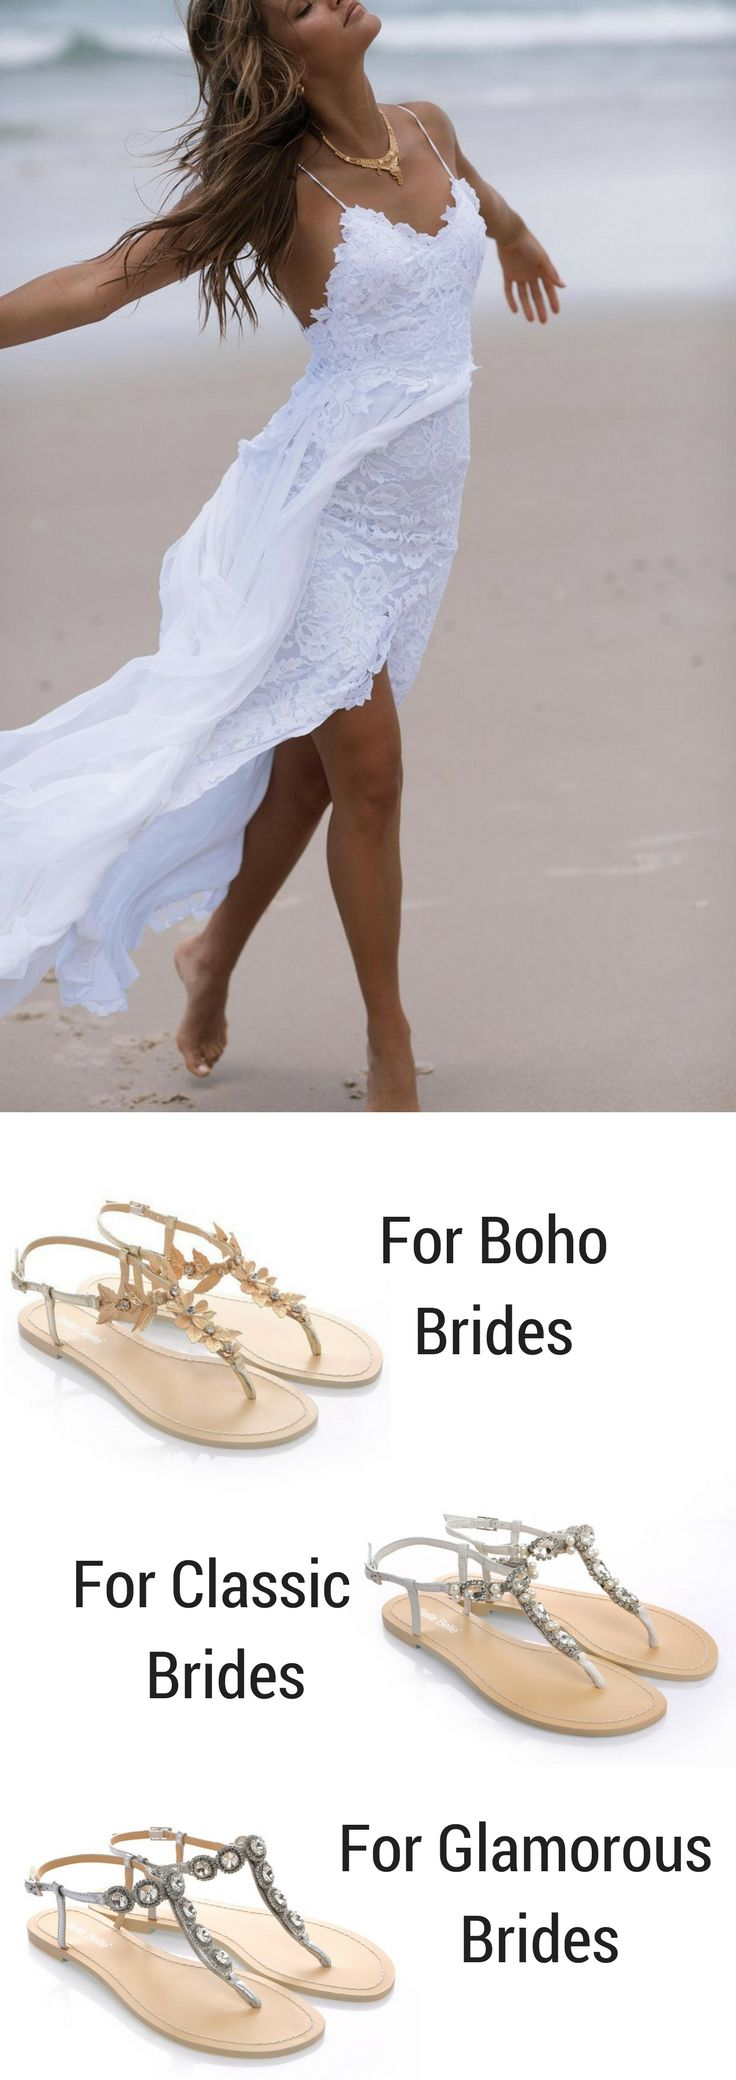 Hello, Hollie 2.0 by Grace Loves Lace! One stunning famous dress, one venue (the beach), 3 options for venue-appropriate sandals for 3 different brides. Wether you are a classic, boho, or glamorous bride, Bella Belle's range of dressy sandals will be appr